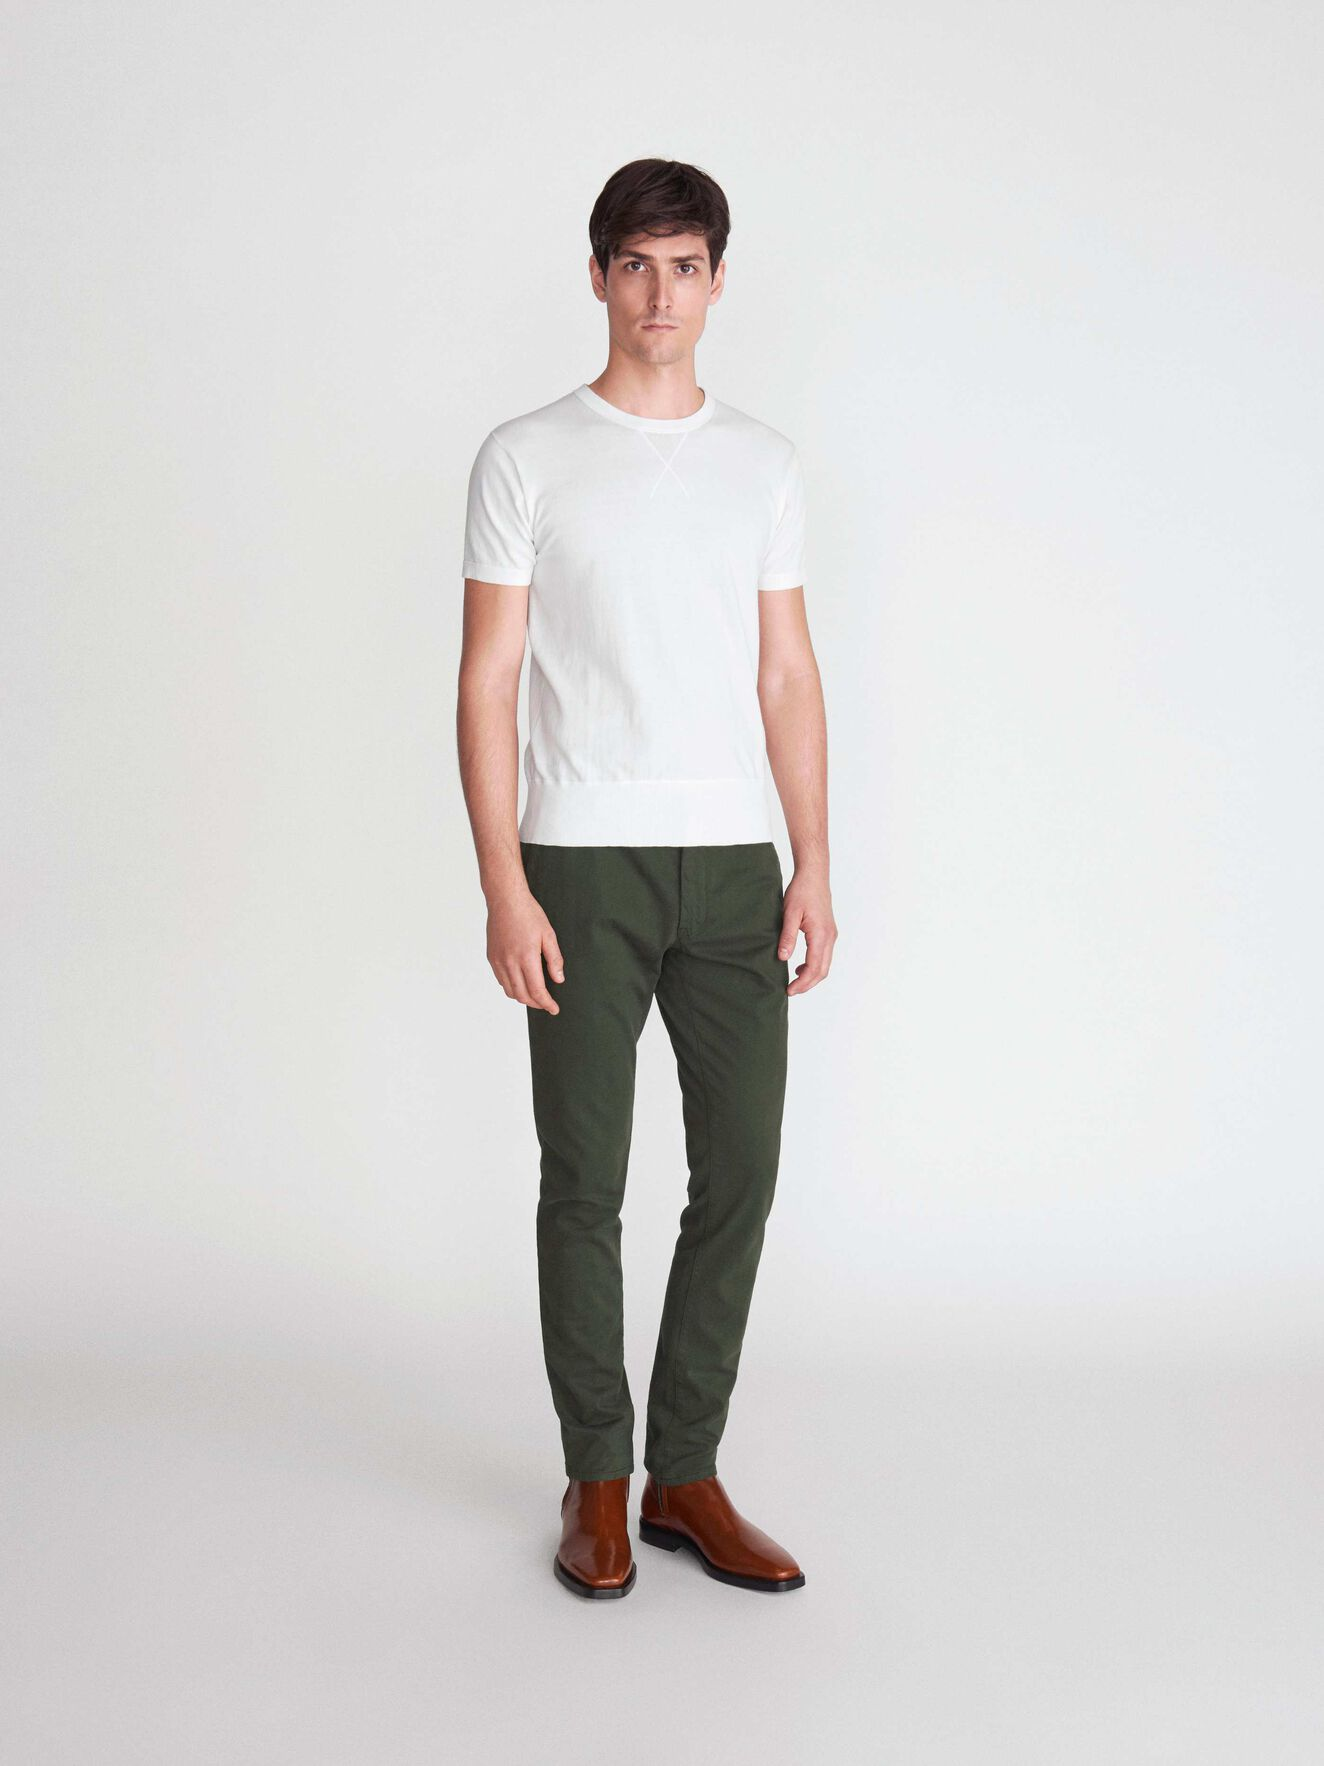 Transit 4 Trousers in Military Green from Tiger of Sweden